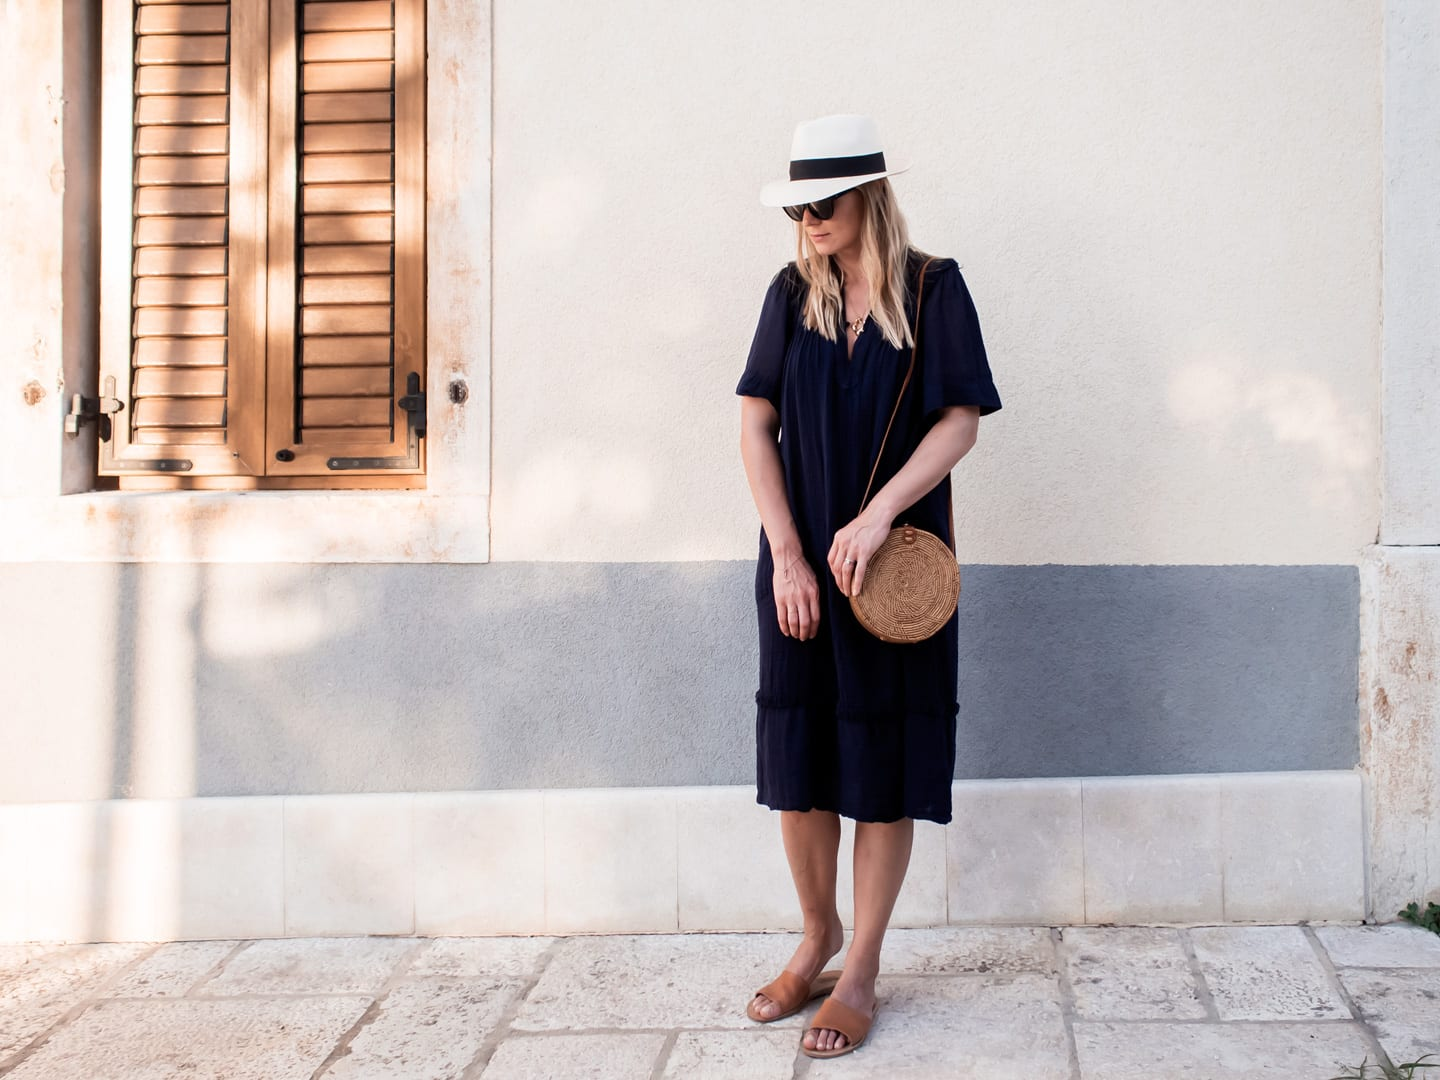 Out-Of-Office | Raquel Allegra Peasant Dress, Davina Mulford Panama, Ancient Greek Sandals, Wood/Grey Woven Bag